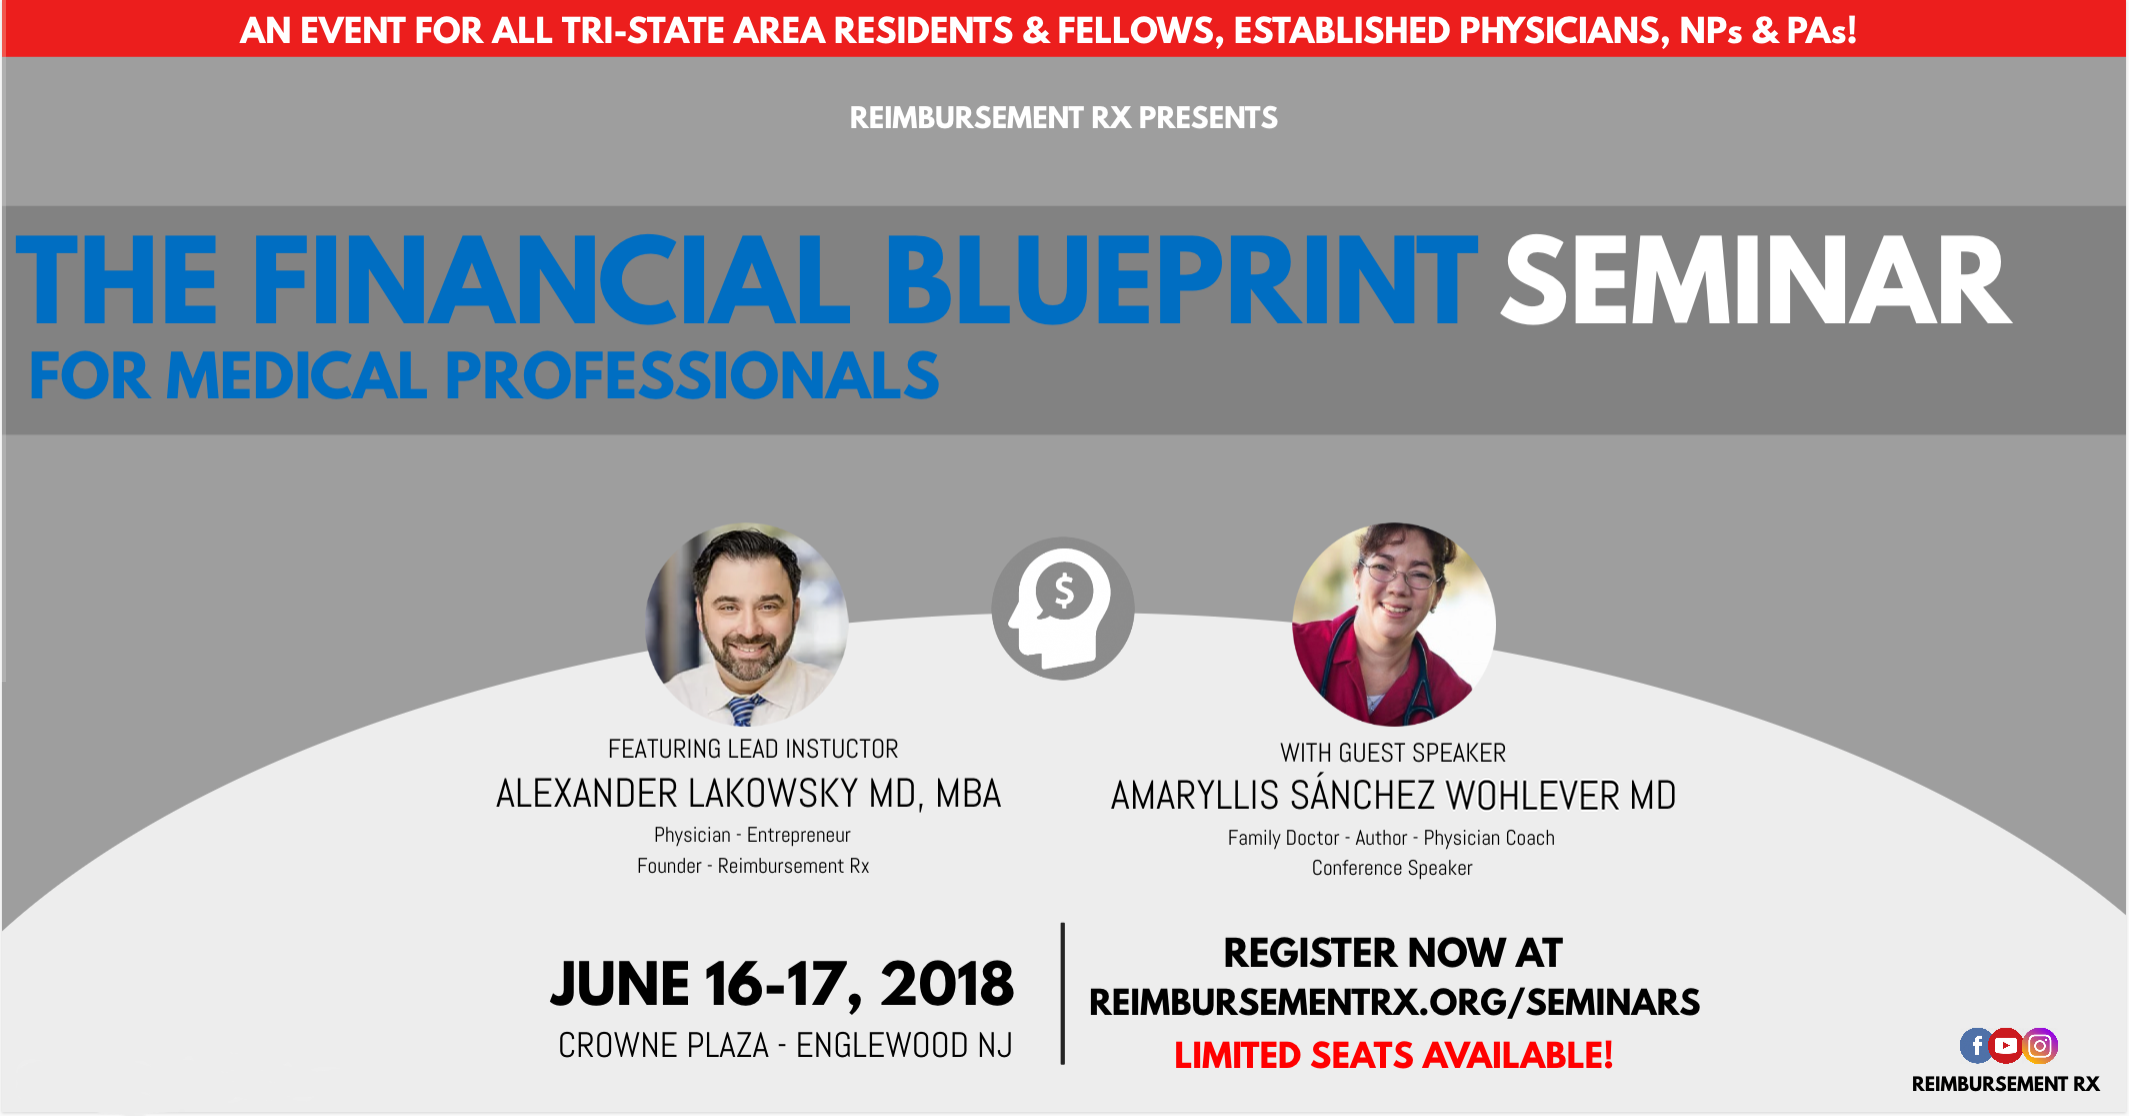 The Financial Blueprint Seminar for Medical Professionals - Coming to the NYC AREA - June 16-17th, 2018